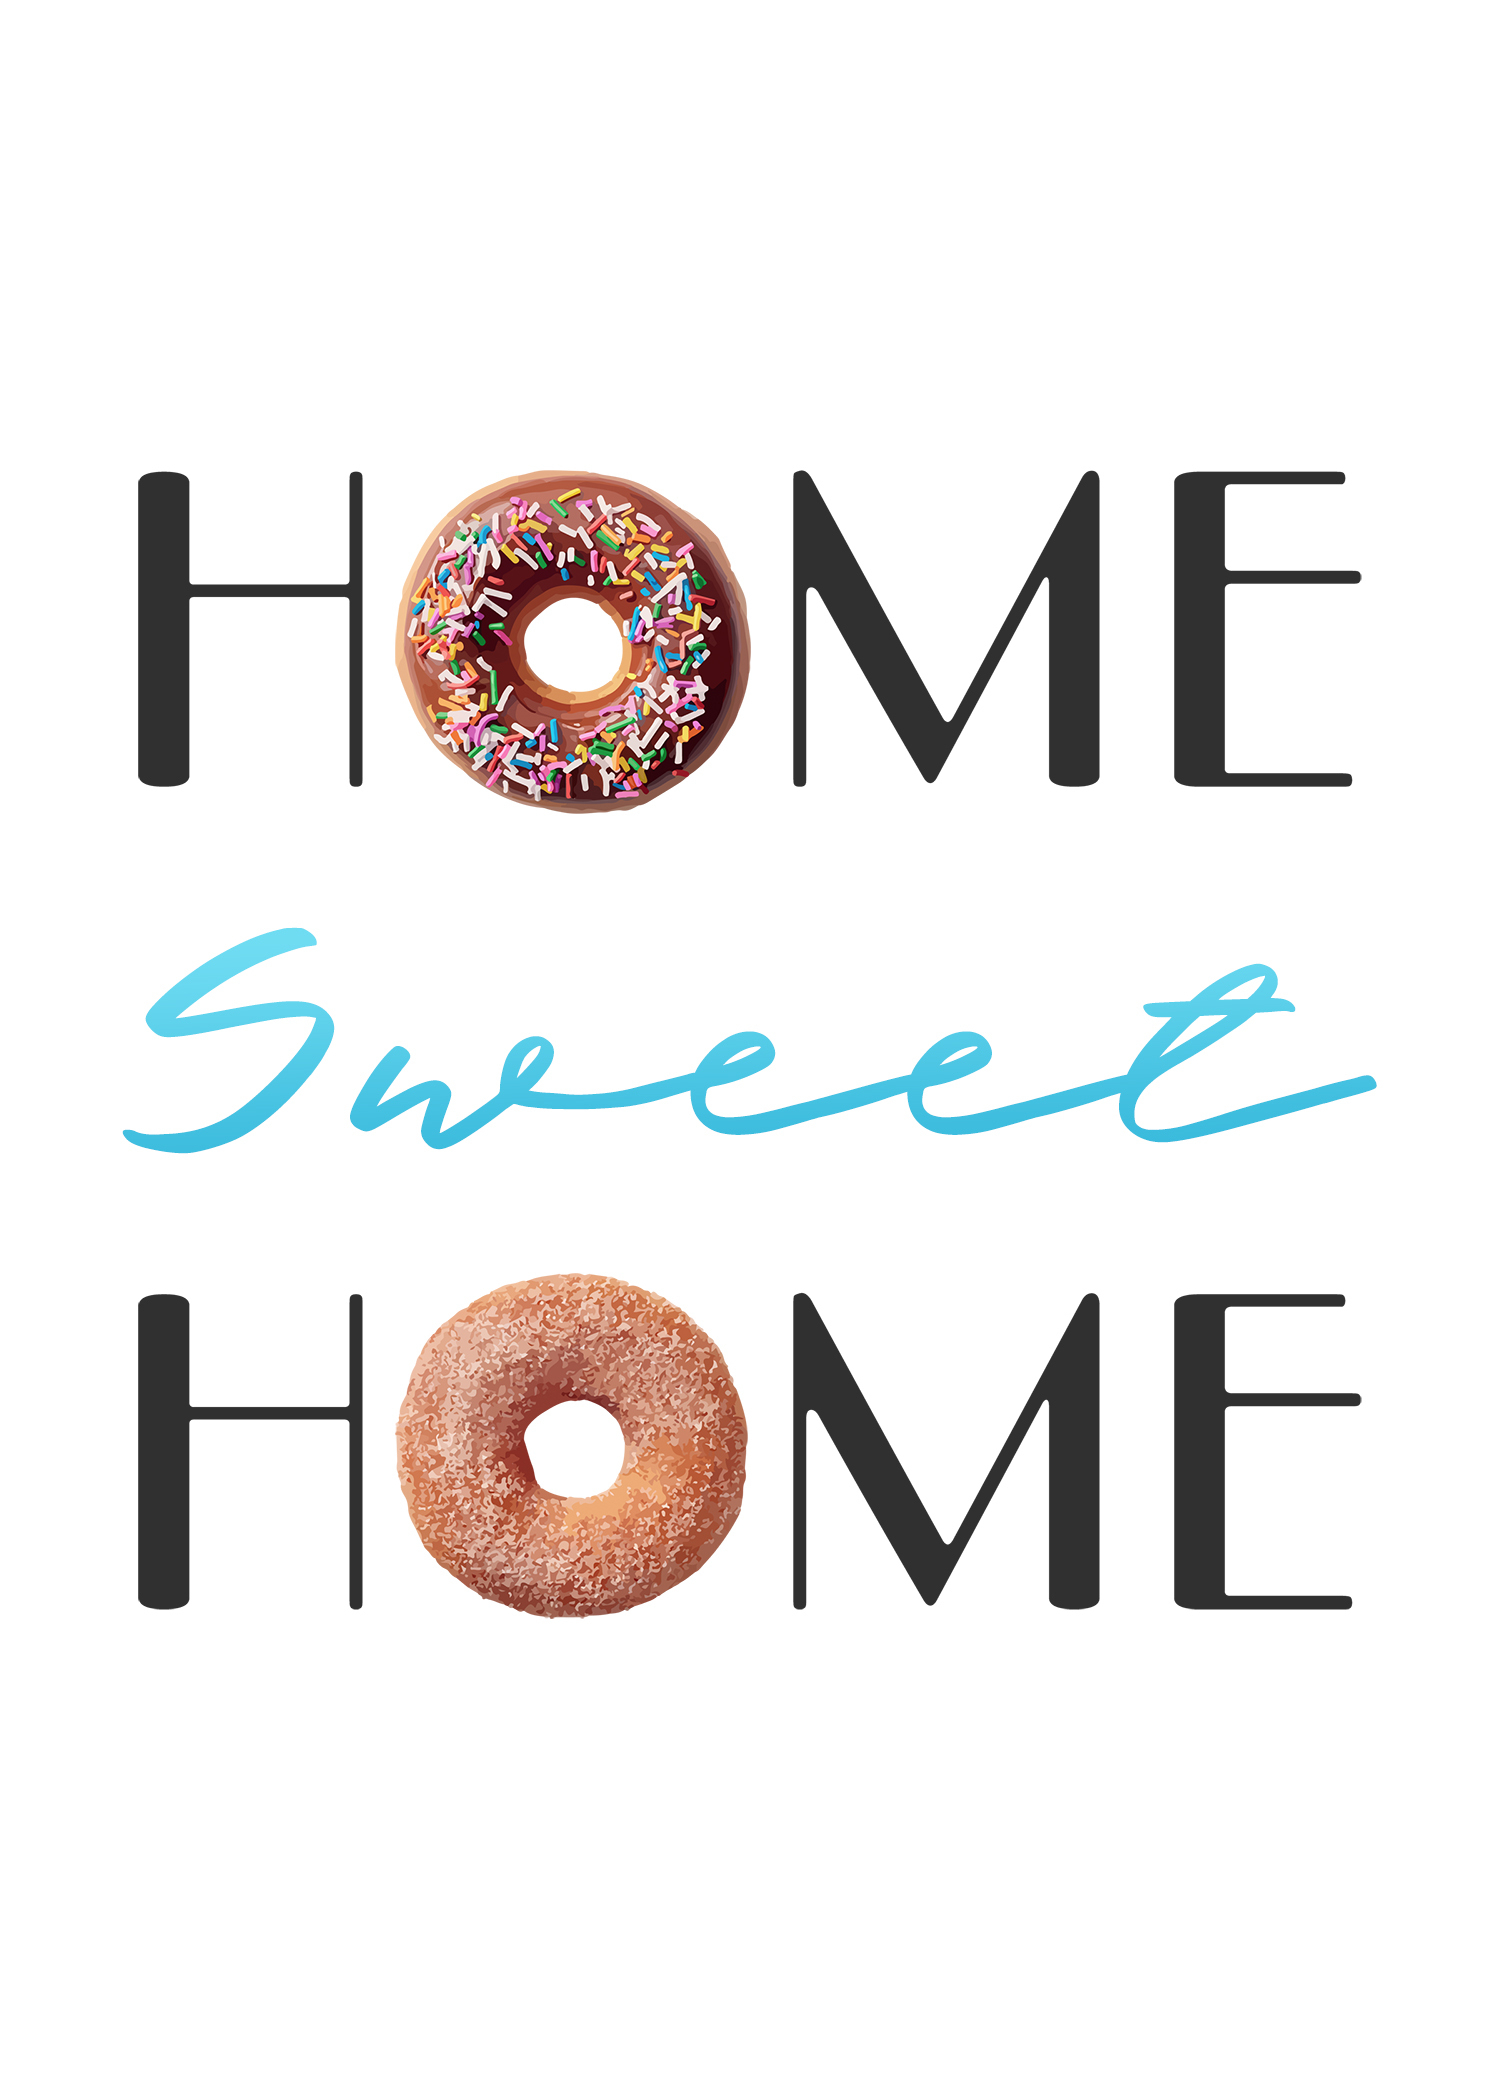 Free Printable Home Sweet Home Wall Art - The Cottage Market - Home Sweet Home Free Printable